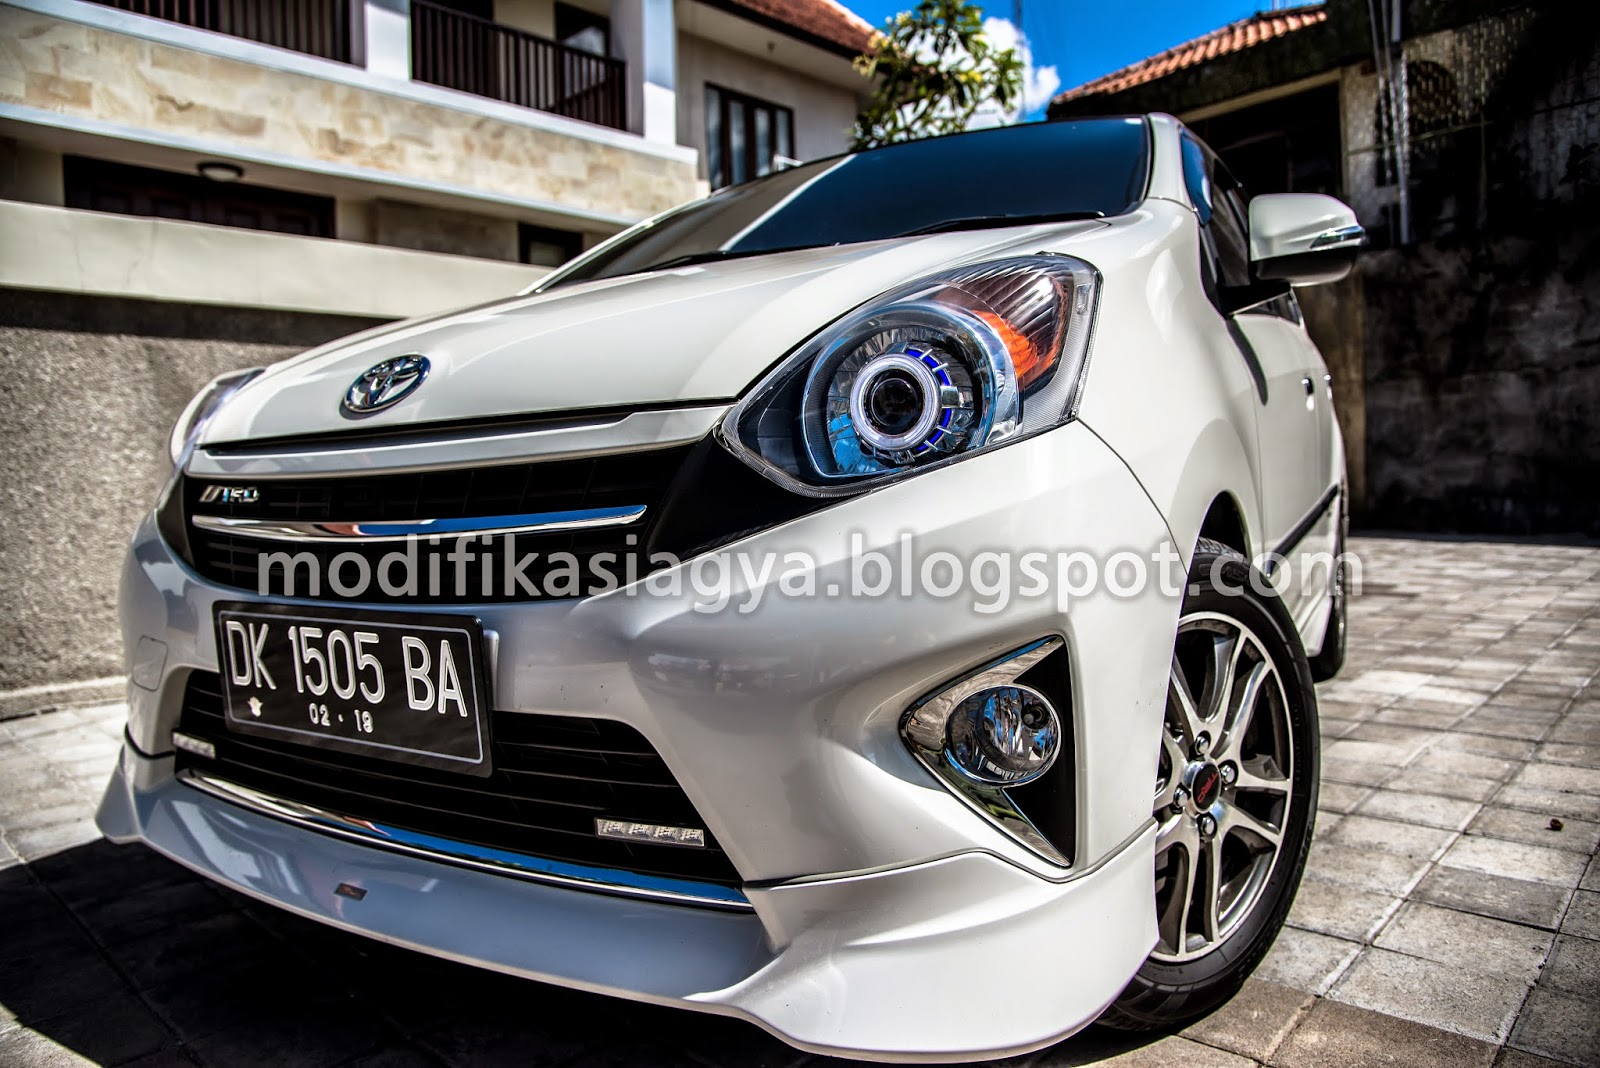 Modifikasi Toyota Agya Modifikasi Lampu Depan Dan LED Daytime